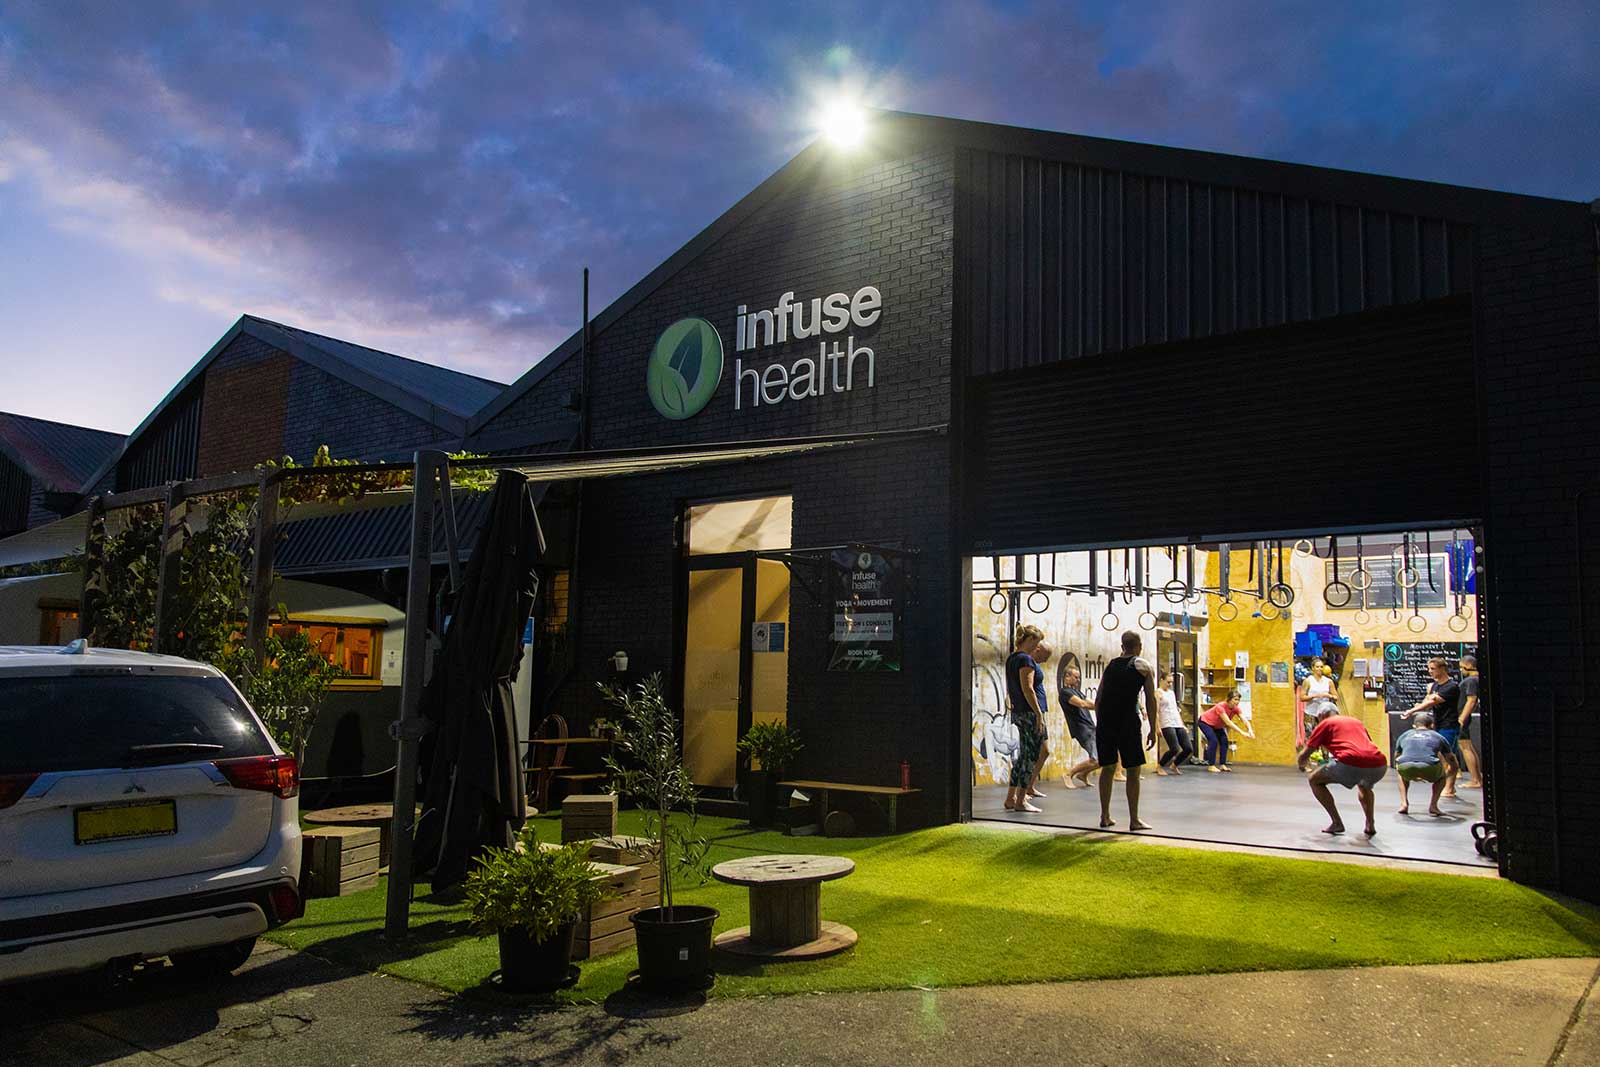 Infuse health exterior photograph at sunrise. A gym class is taking place through a roller door